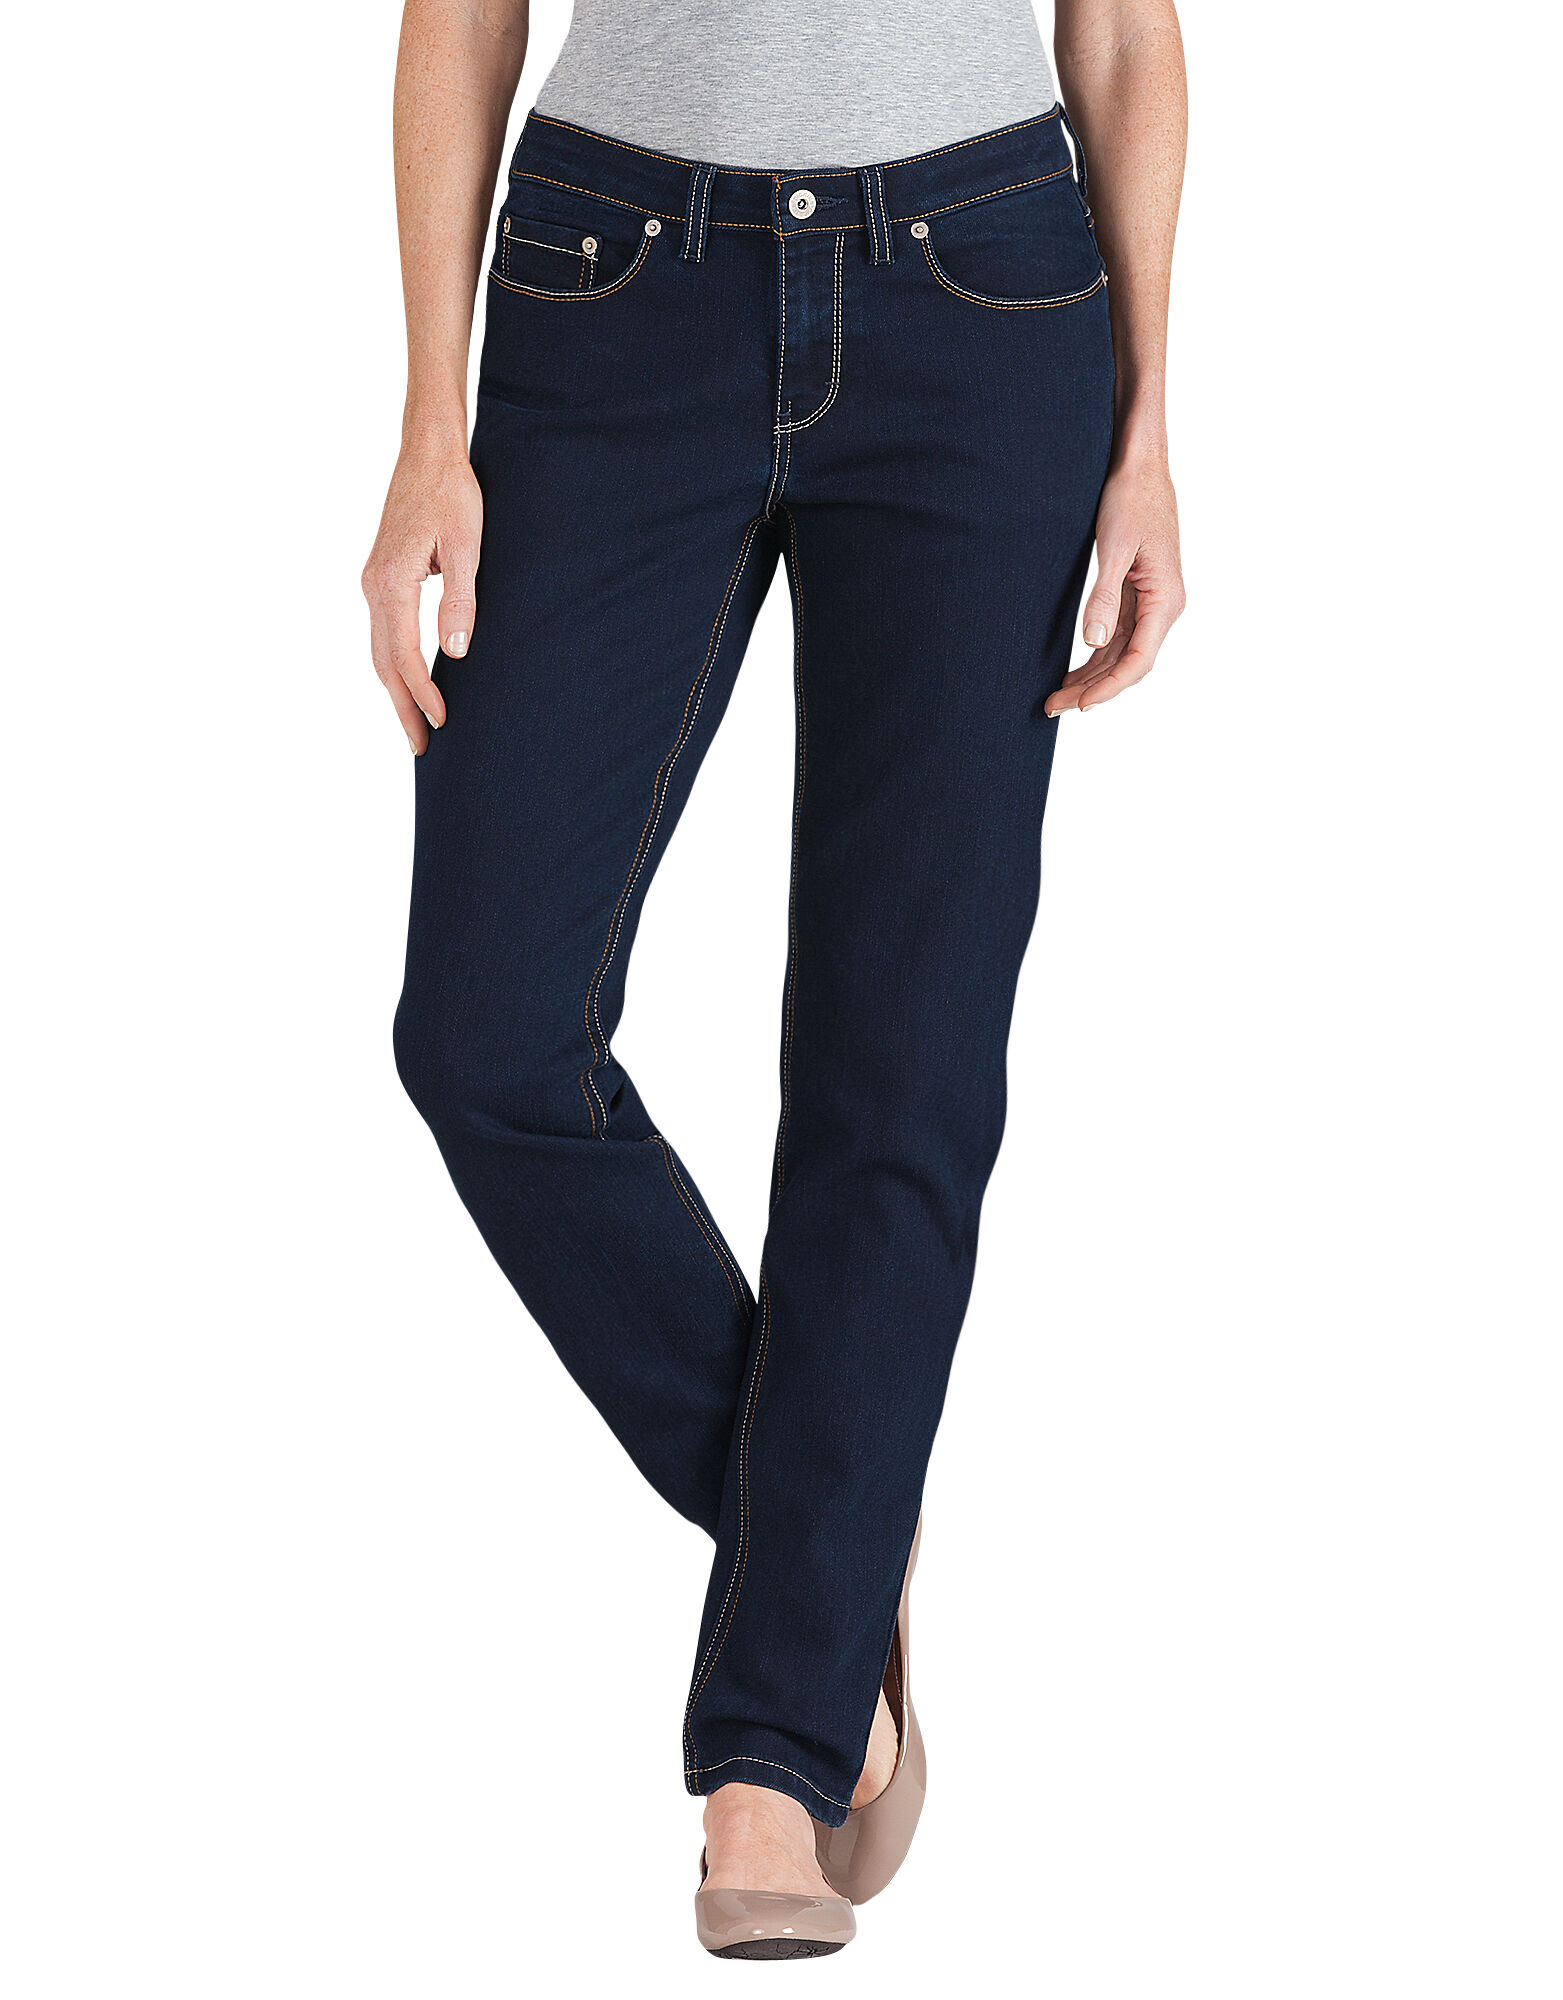 Skinny Curvy Fit Jeans for Women | Dickies Canada